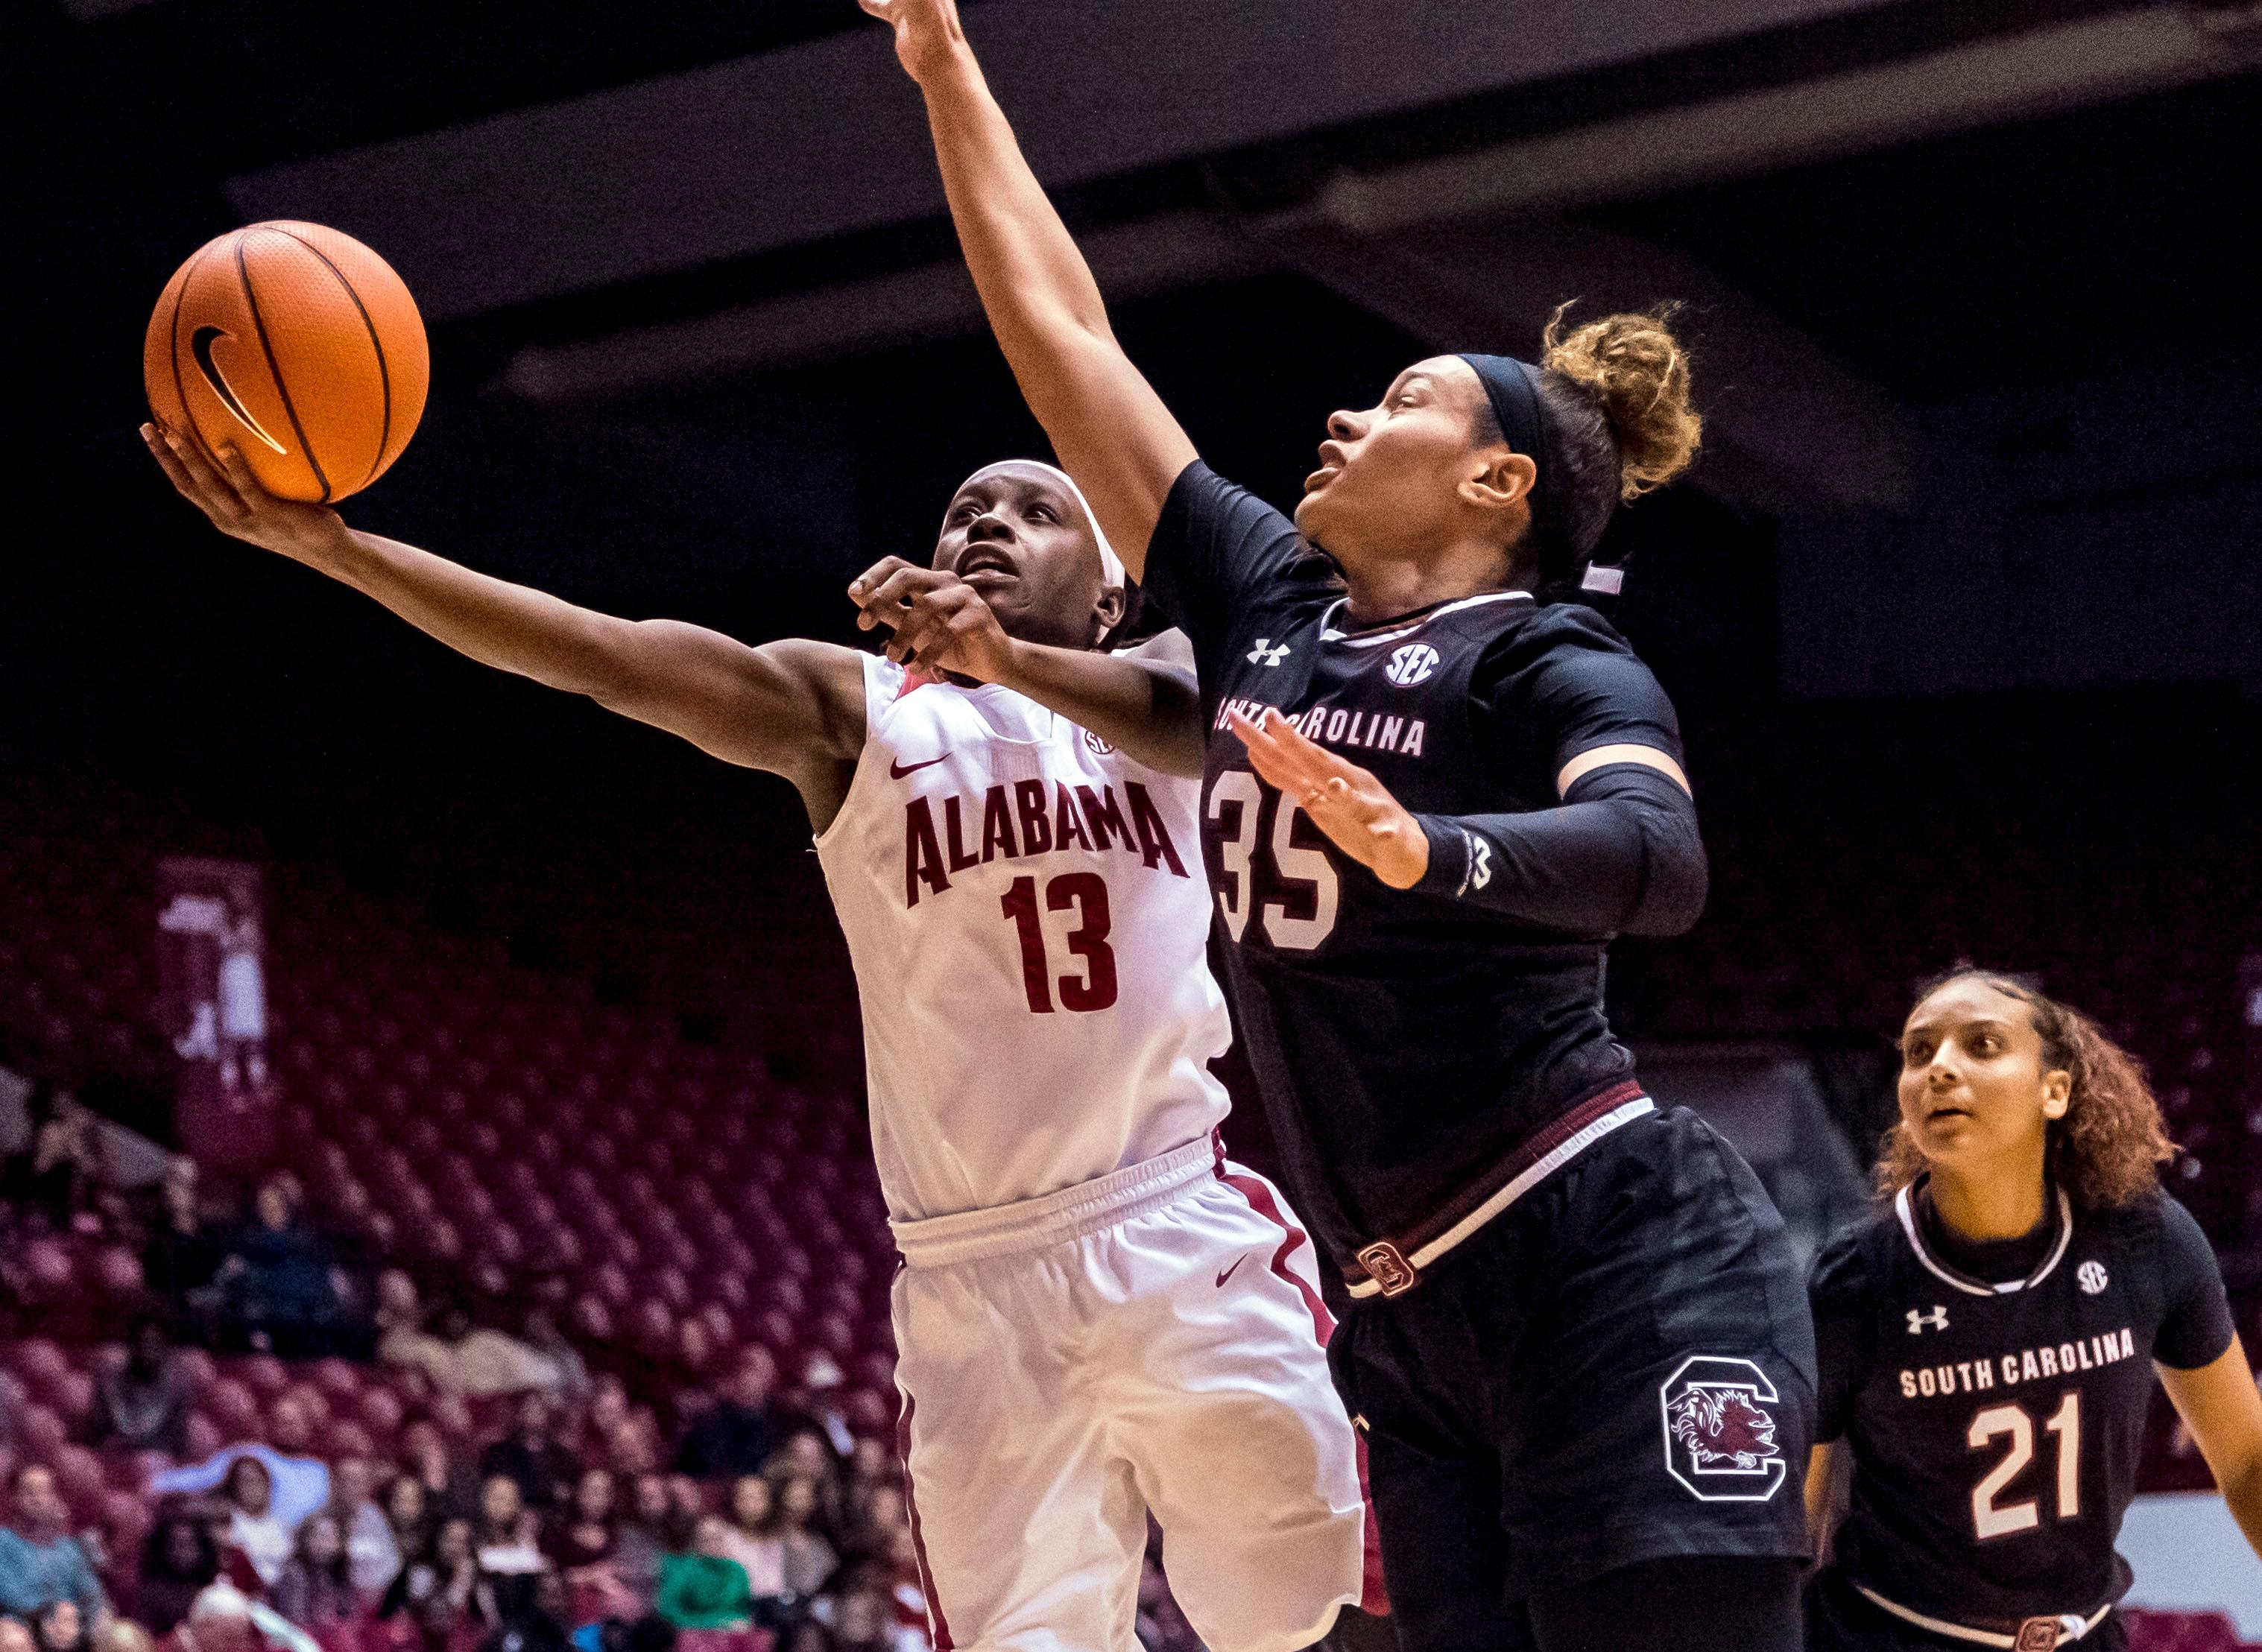 Alabama guard Coco Knight (13) gets past South Carolina forward Alexis Jennings (35) for two points during an NCAA college basketball game Thursday, Feb. 8, 2018, in Tuscaloosa, Ala. (Vasha Hunt/AL.com via AP)